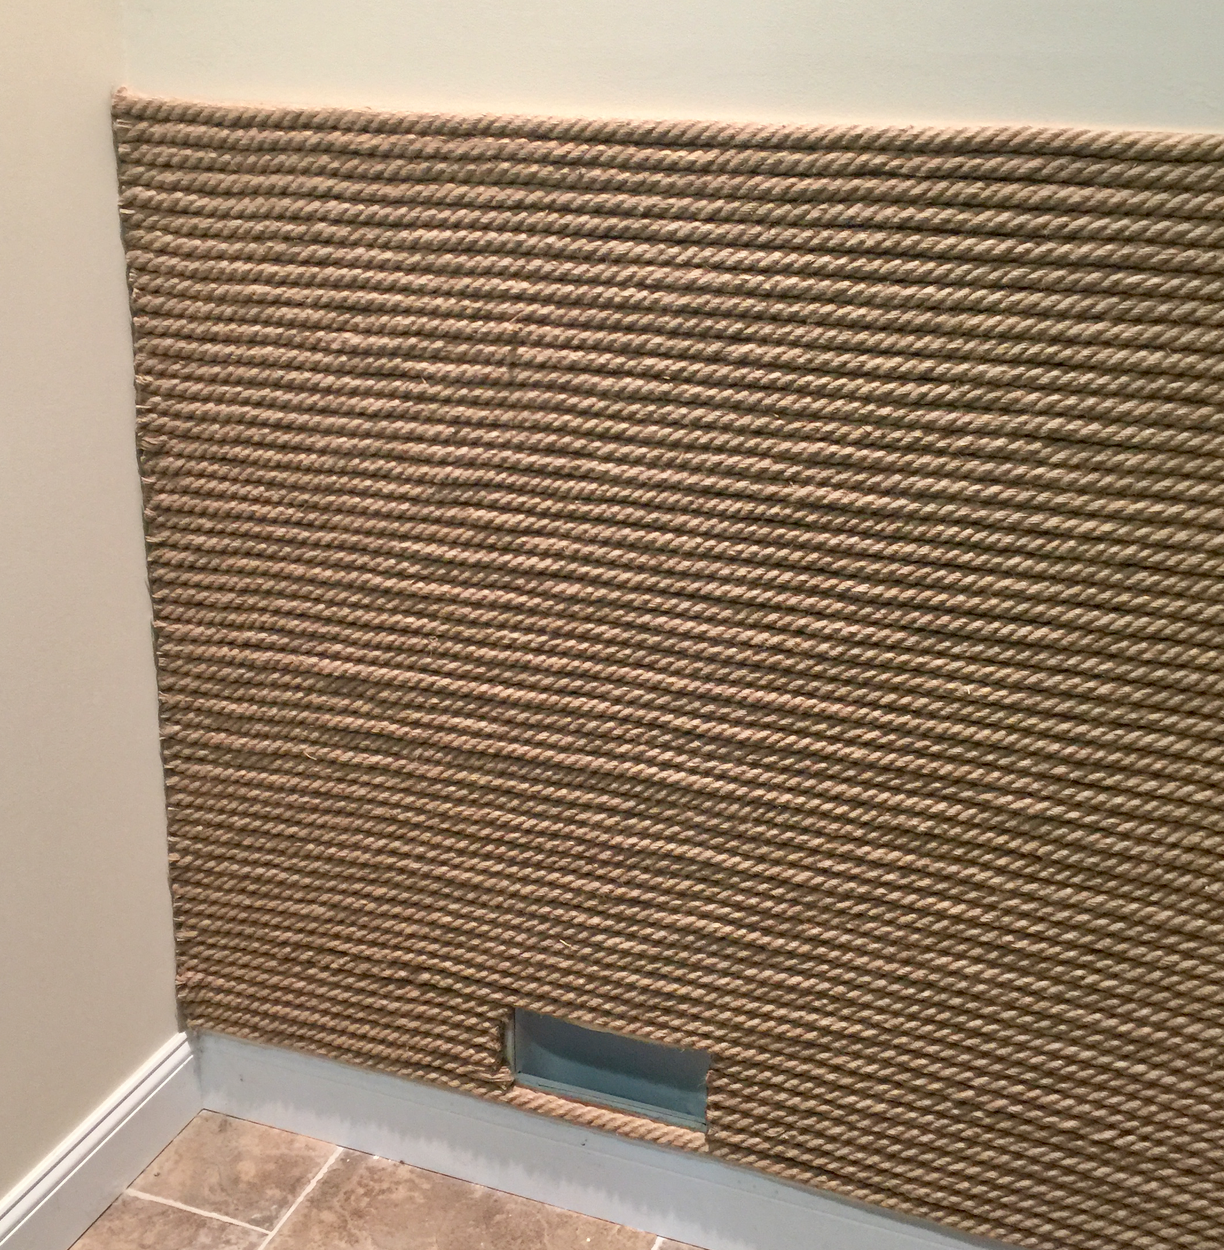 Rope accent wall beginning